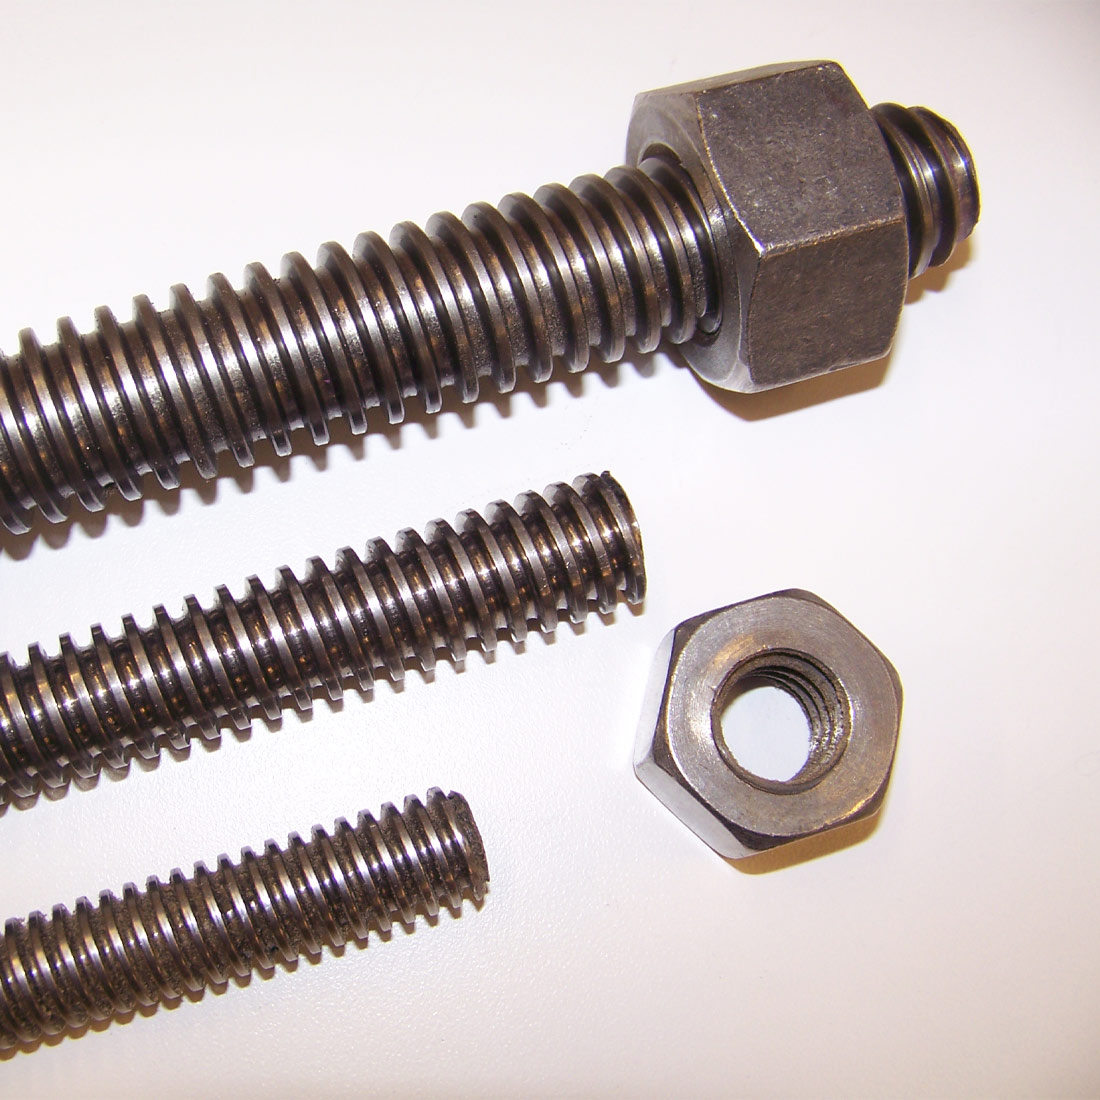 all-threaded-rods-